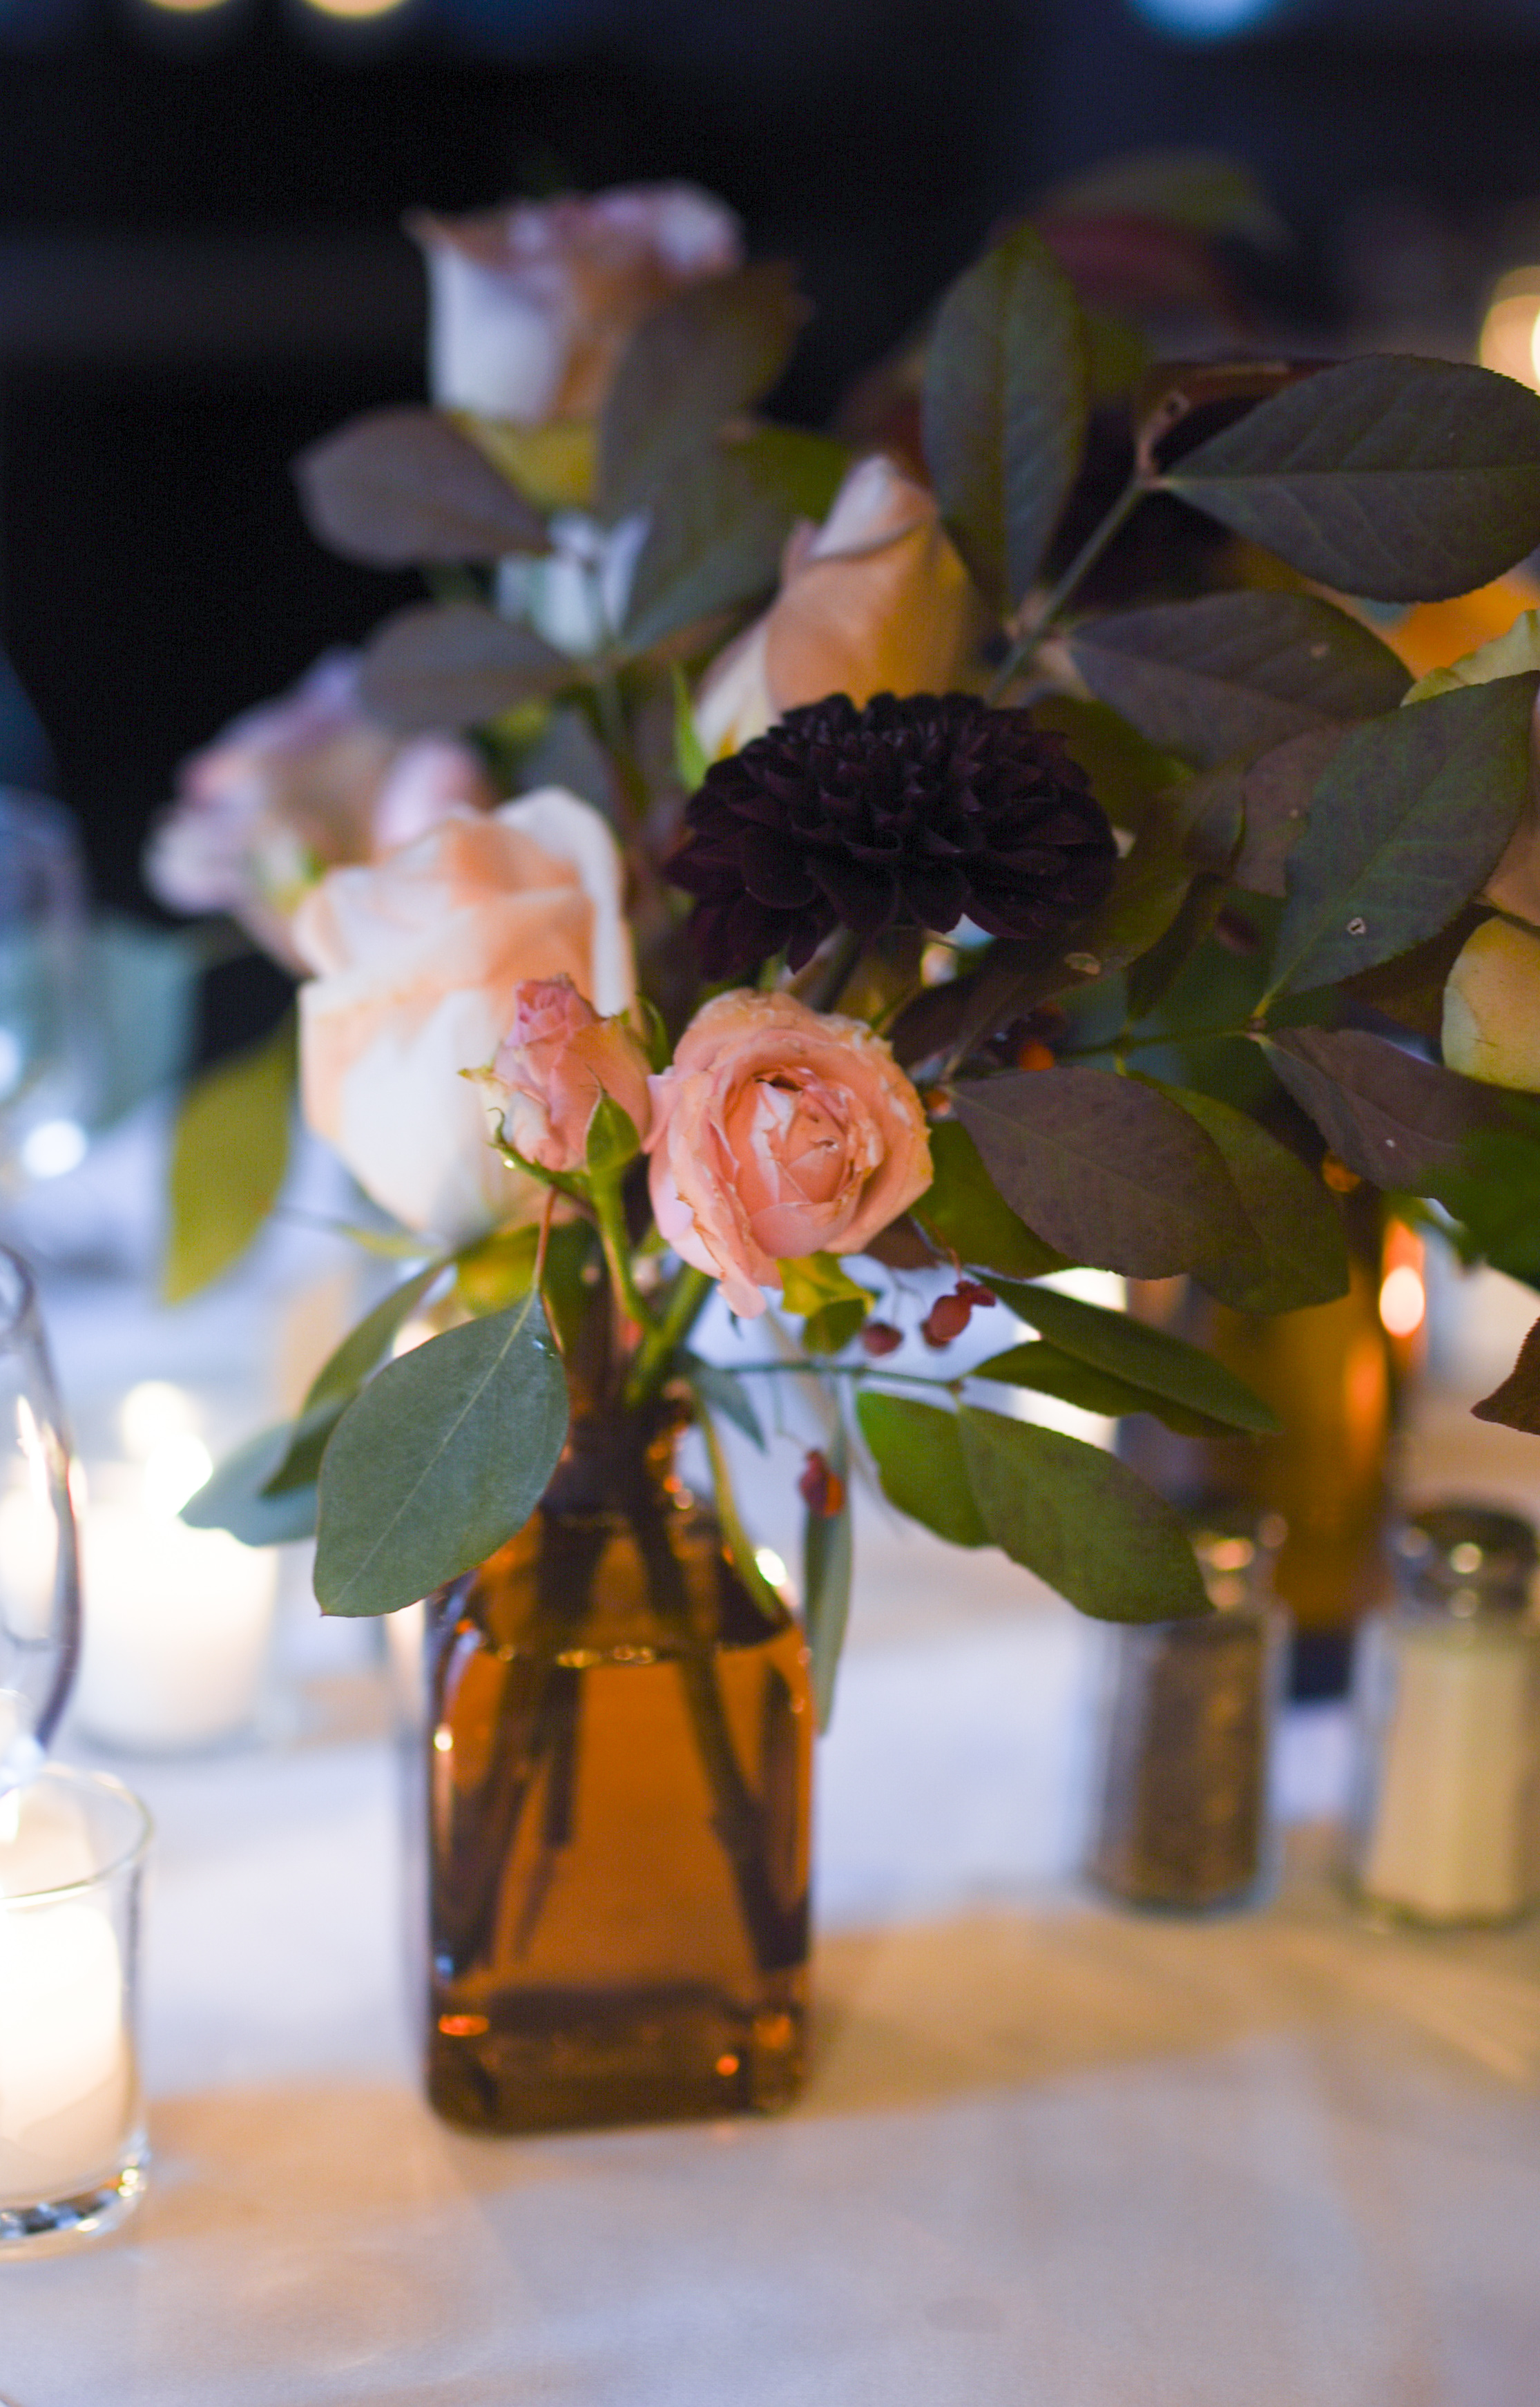 Another version of our amber bud vases - light pink flowers with deep foliage colors